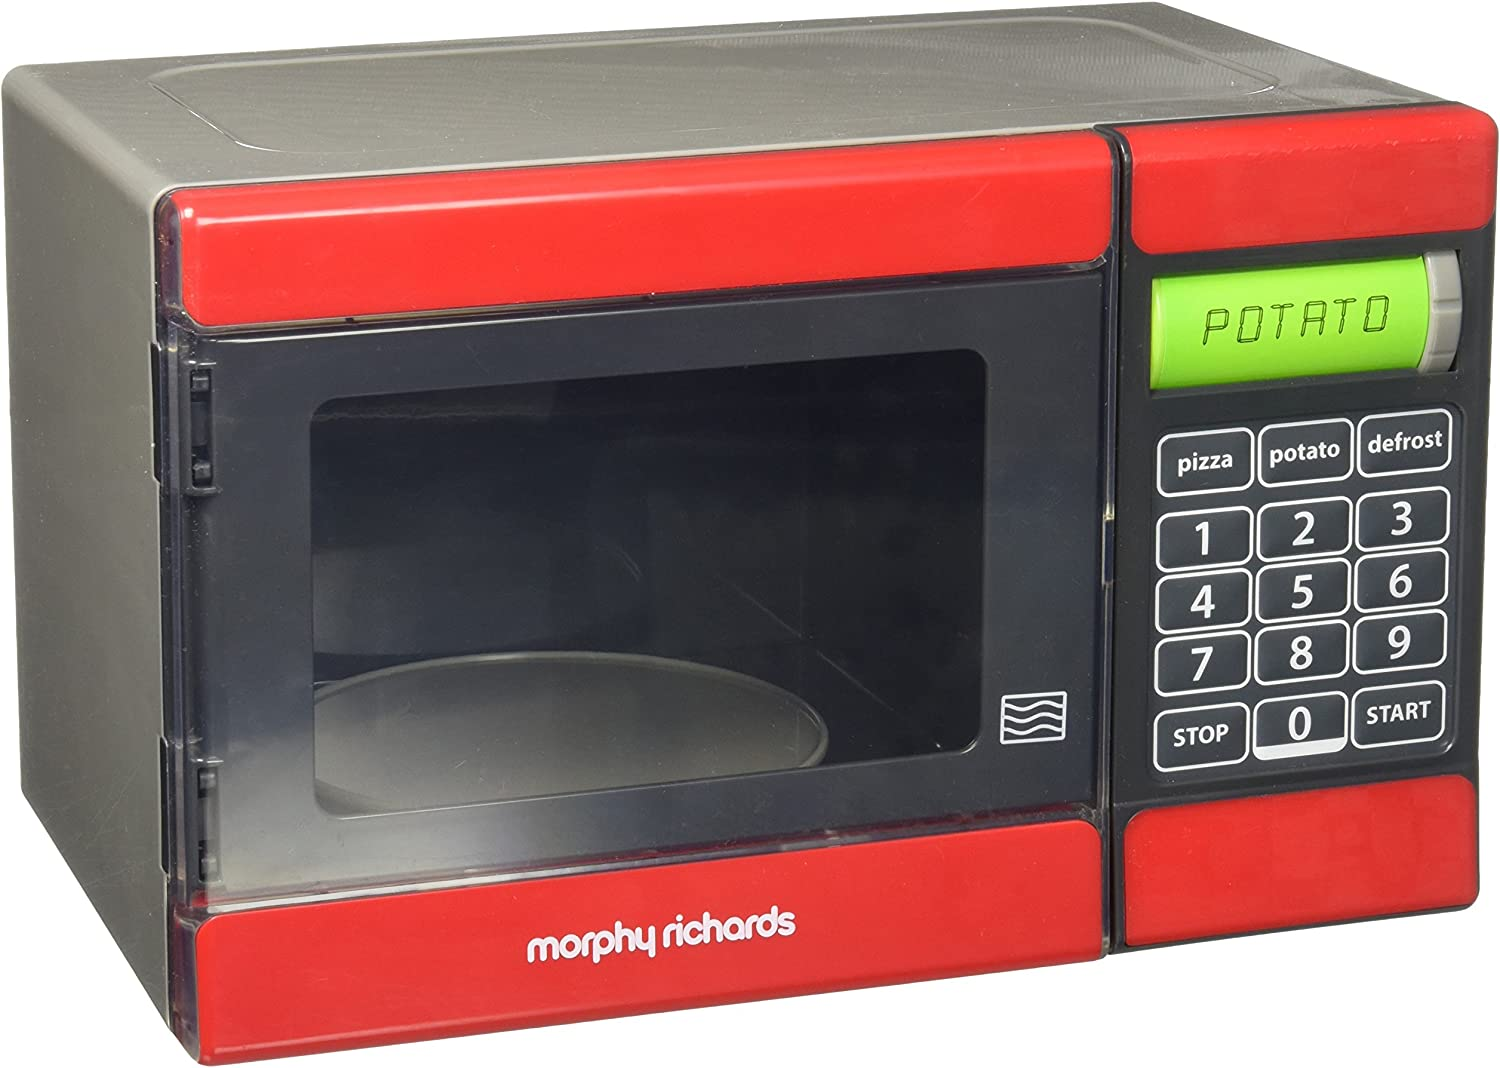 Amazon.com: Casdon Morphy Richards Microondas Juguete: Toys ...